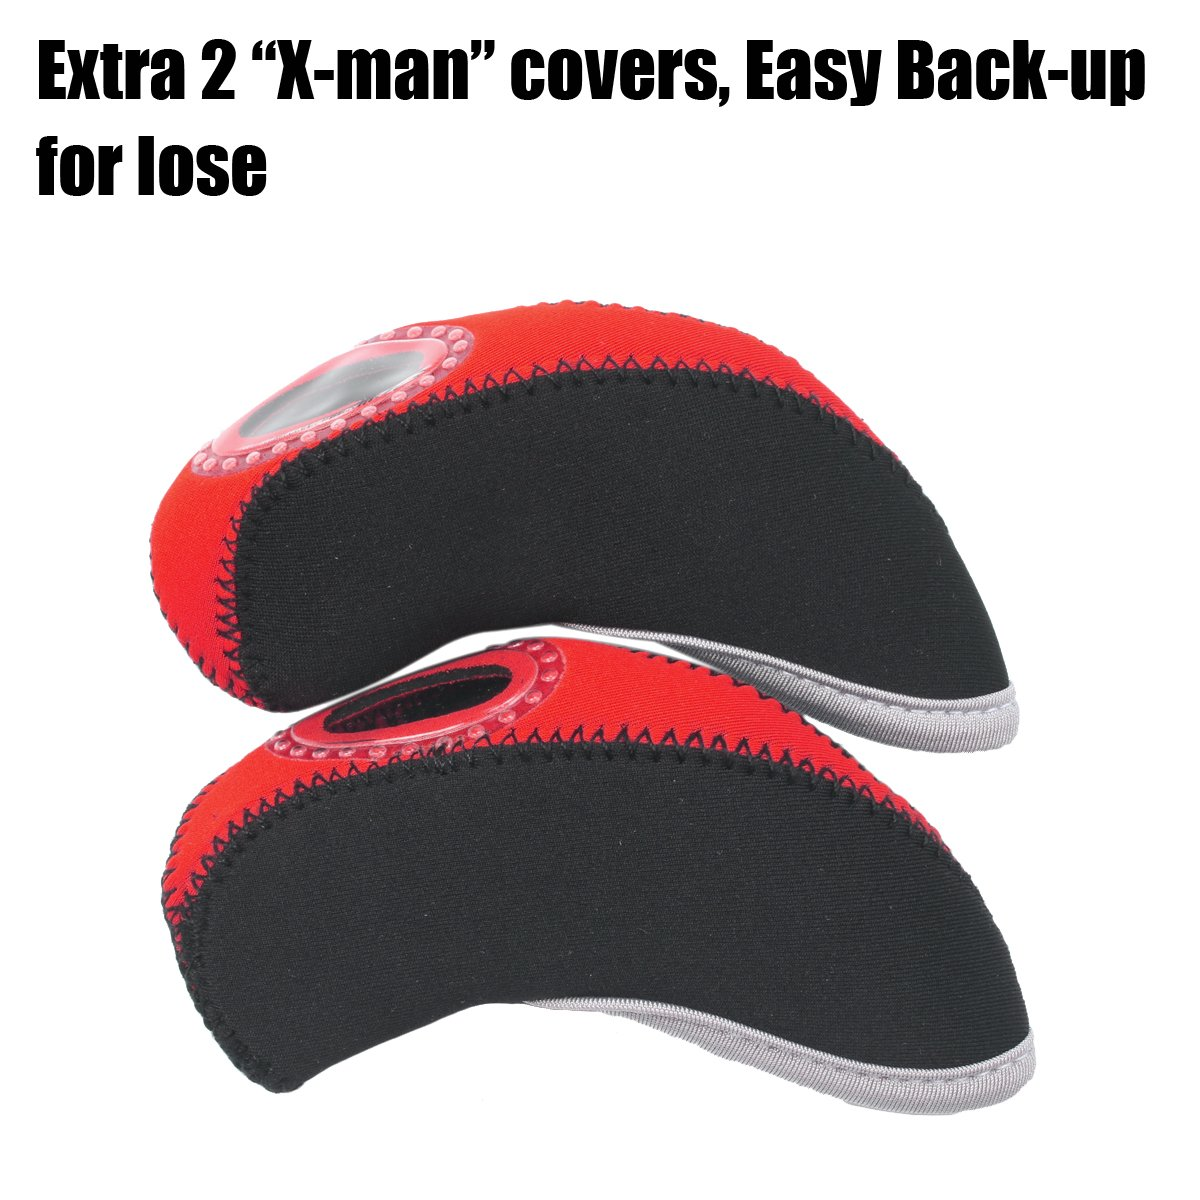 Summer House 12 Pcs Waterproof Golf Iron Head Covers 3-9 A/S/P/Lw/Lw Oversize Soft Pu fit Taylormade M1 Callaway Titleist AP2 Ping G Cobra PXG 0311 / 0311T etc Iron Sets Head (Neoprene-Red) by Summer House (Image #1)